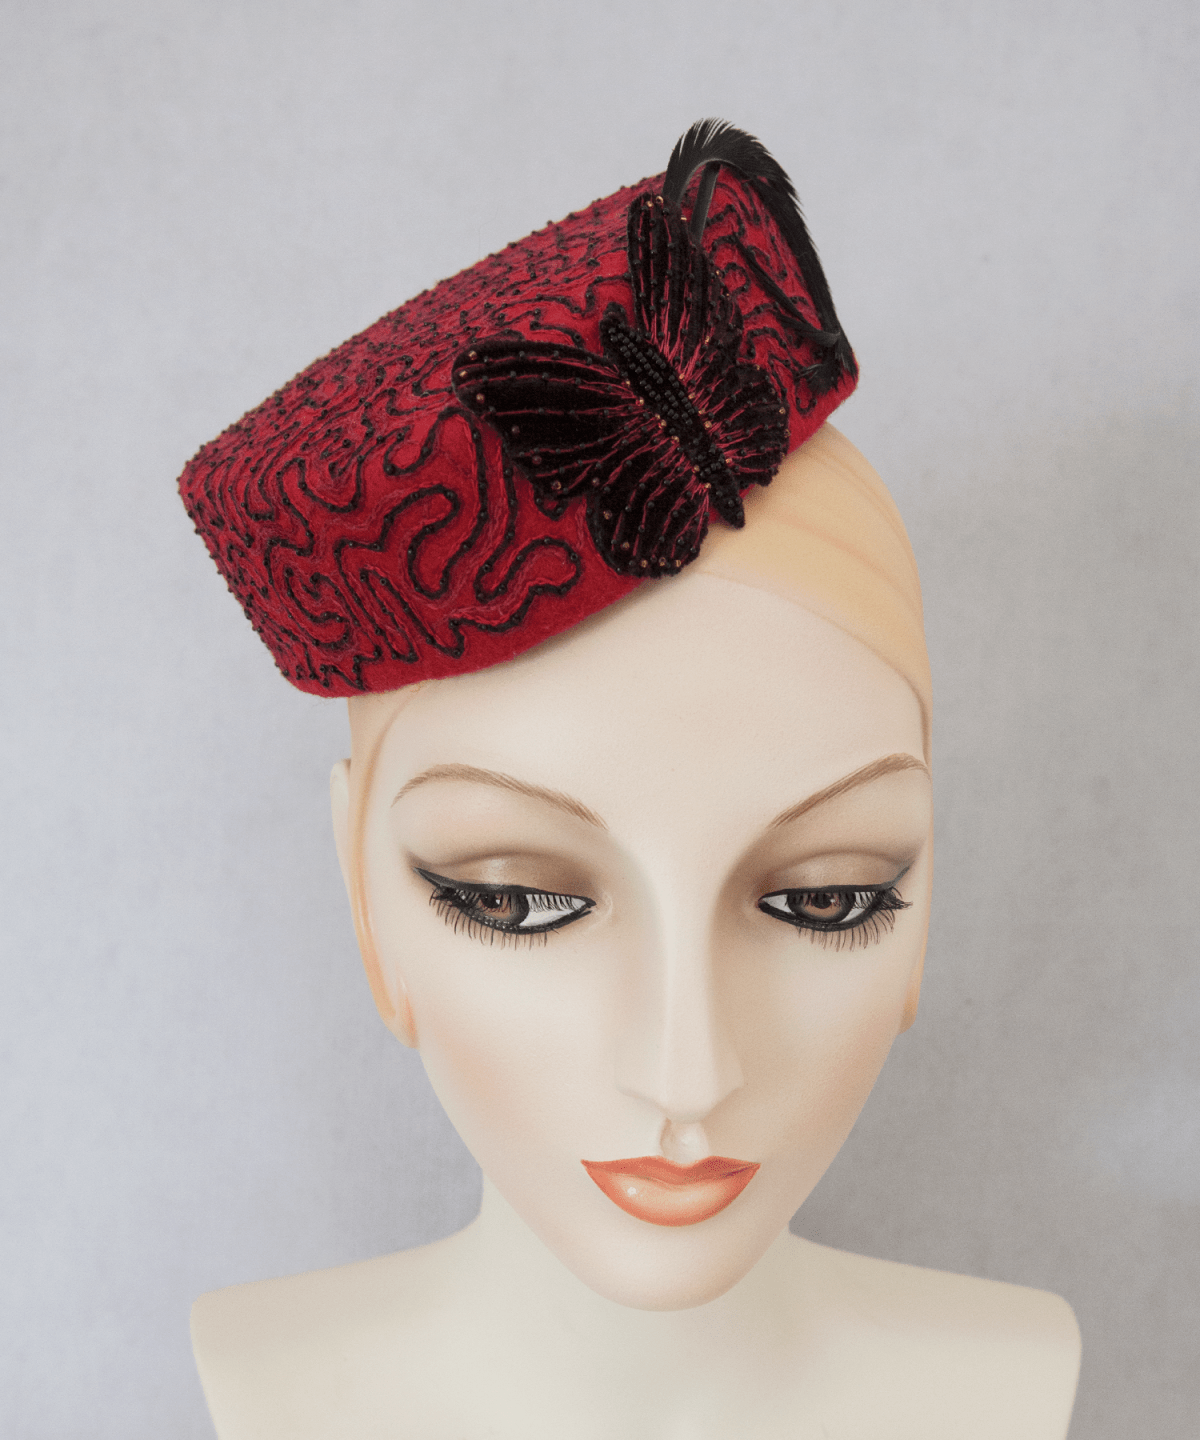 "Signature Millinery Styles and Favorite ""Millinery Operations"" Topics?"